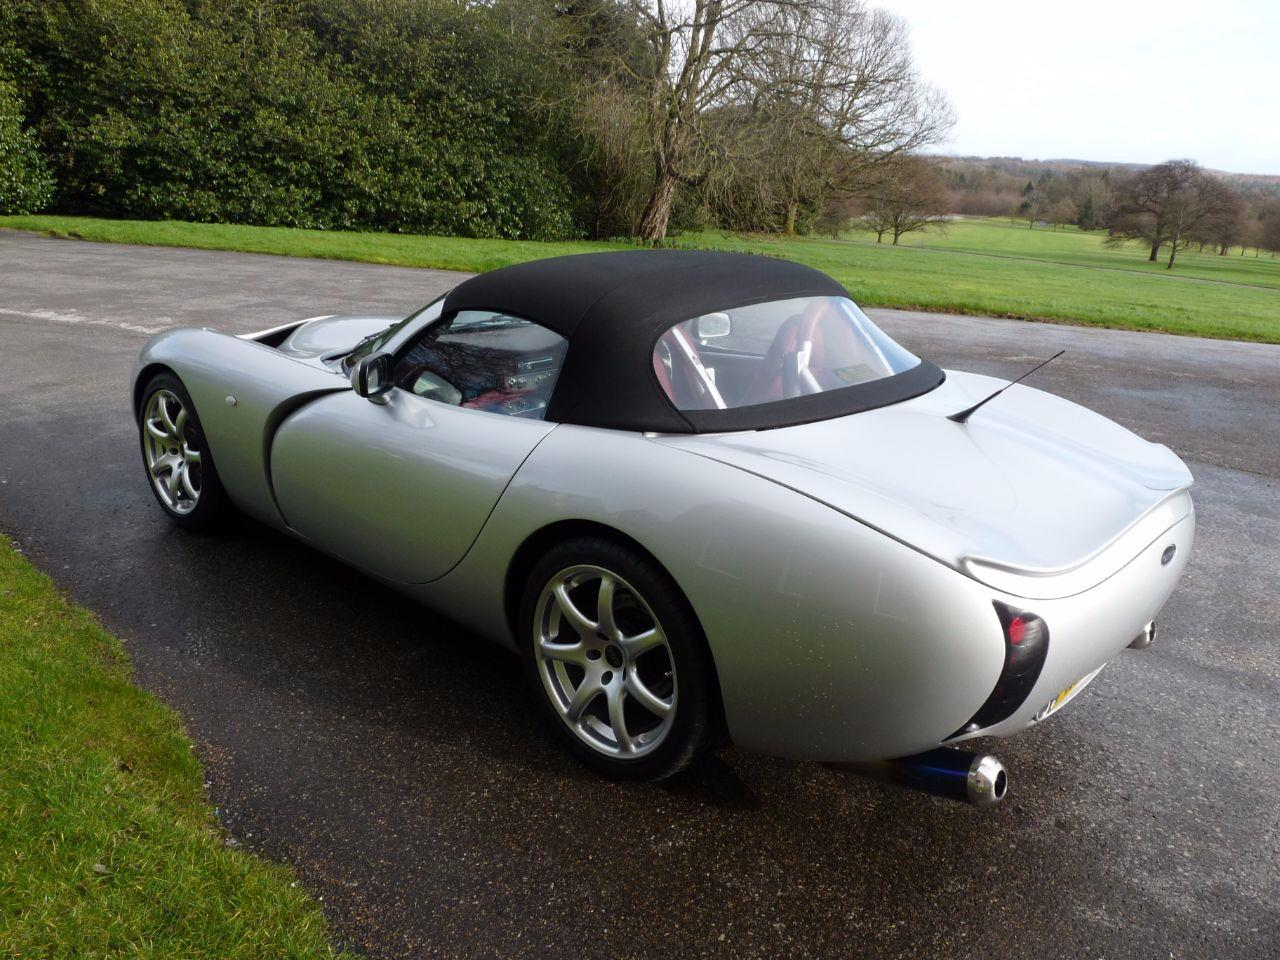 Tvr convertible photo - 6